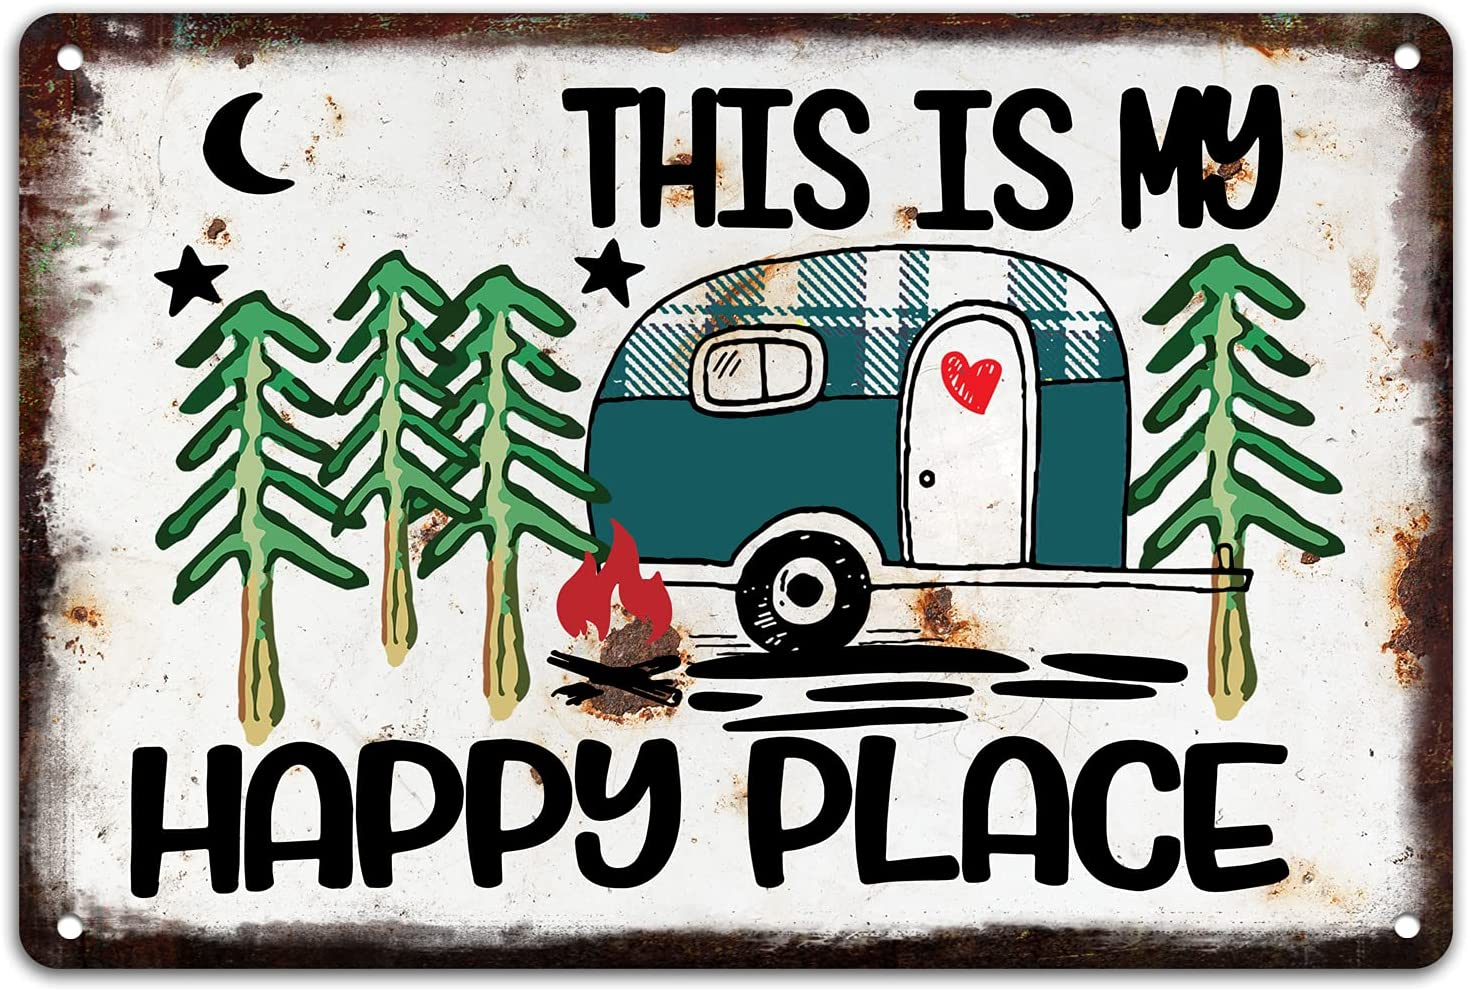 OCCdesign Rustic Camper Metal Tin Decor Sign Home RV Camper Accessories Wall Décor Gift Idea for Friend Family Motorhomes/Farmhouse RV Camping-This is My Happy place-M025